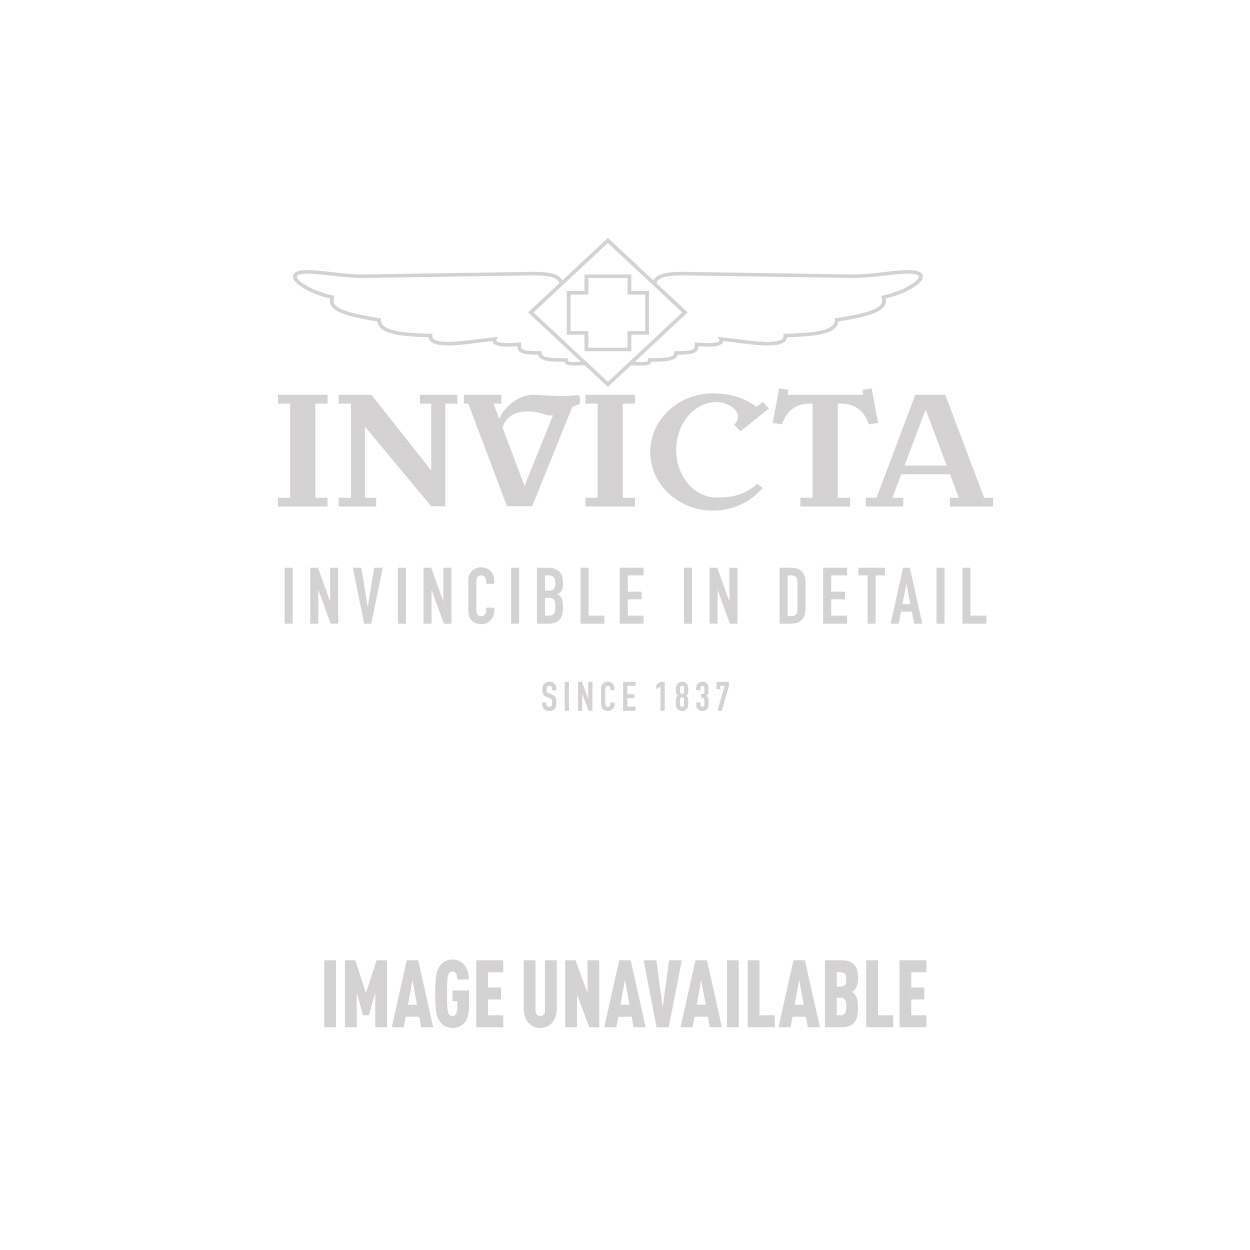 Invicta Angel Swiss Movement Quartz Watch - Stainless Steel case Stainless Steel band - Model 20502